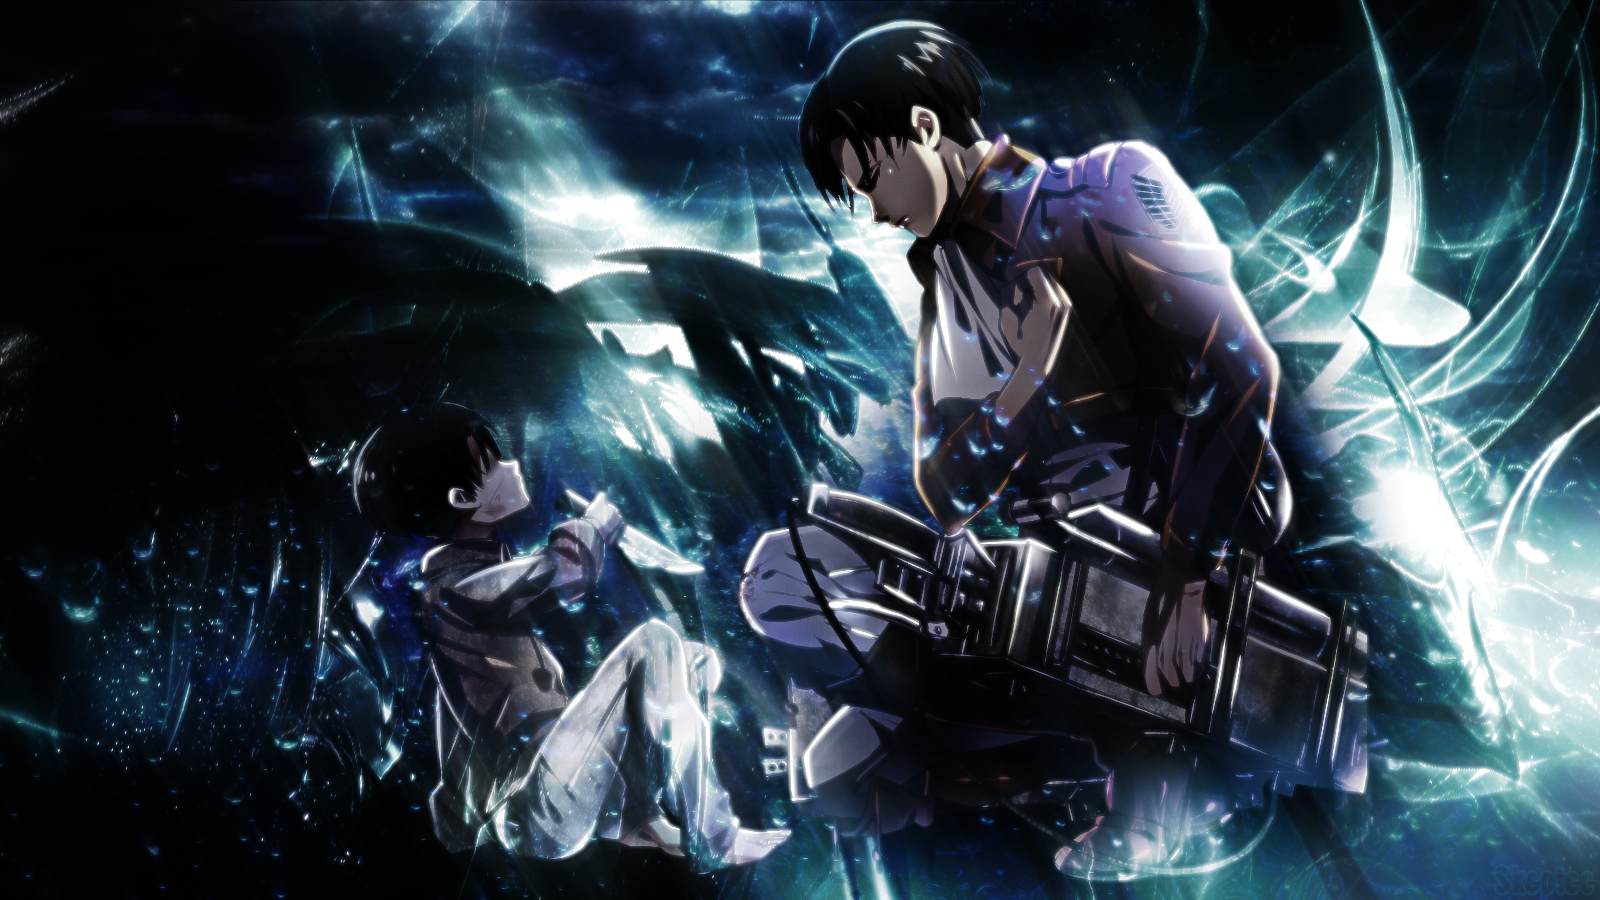 Levi Attack On Titan Rainfall Wallpaper Anime Wallpaper Anime Aot Wallpaper